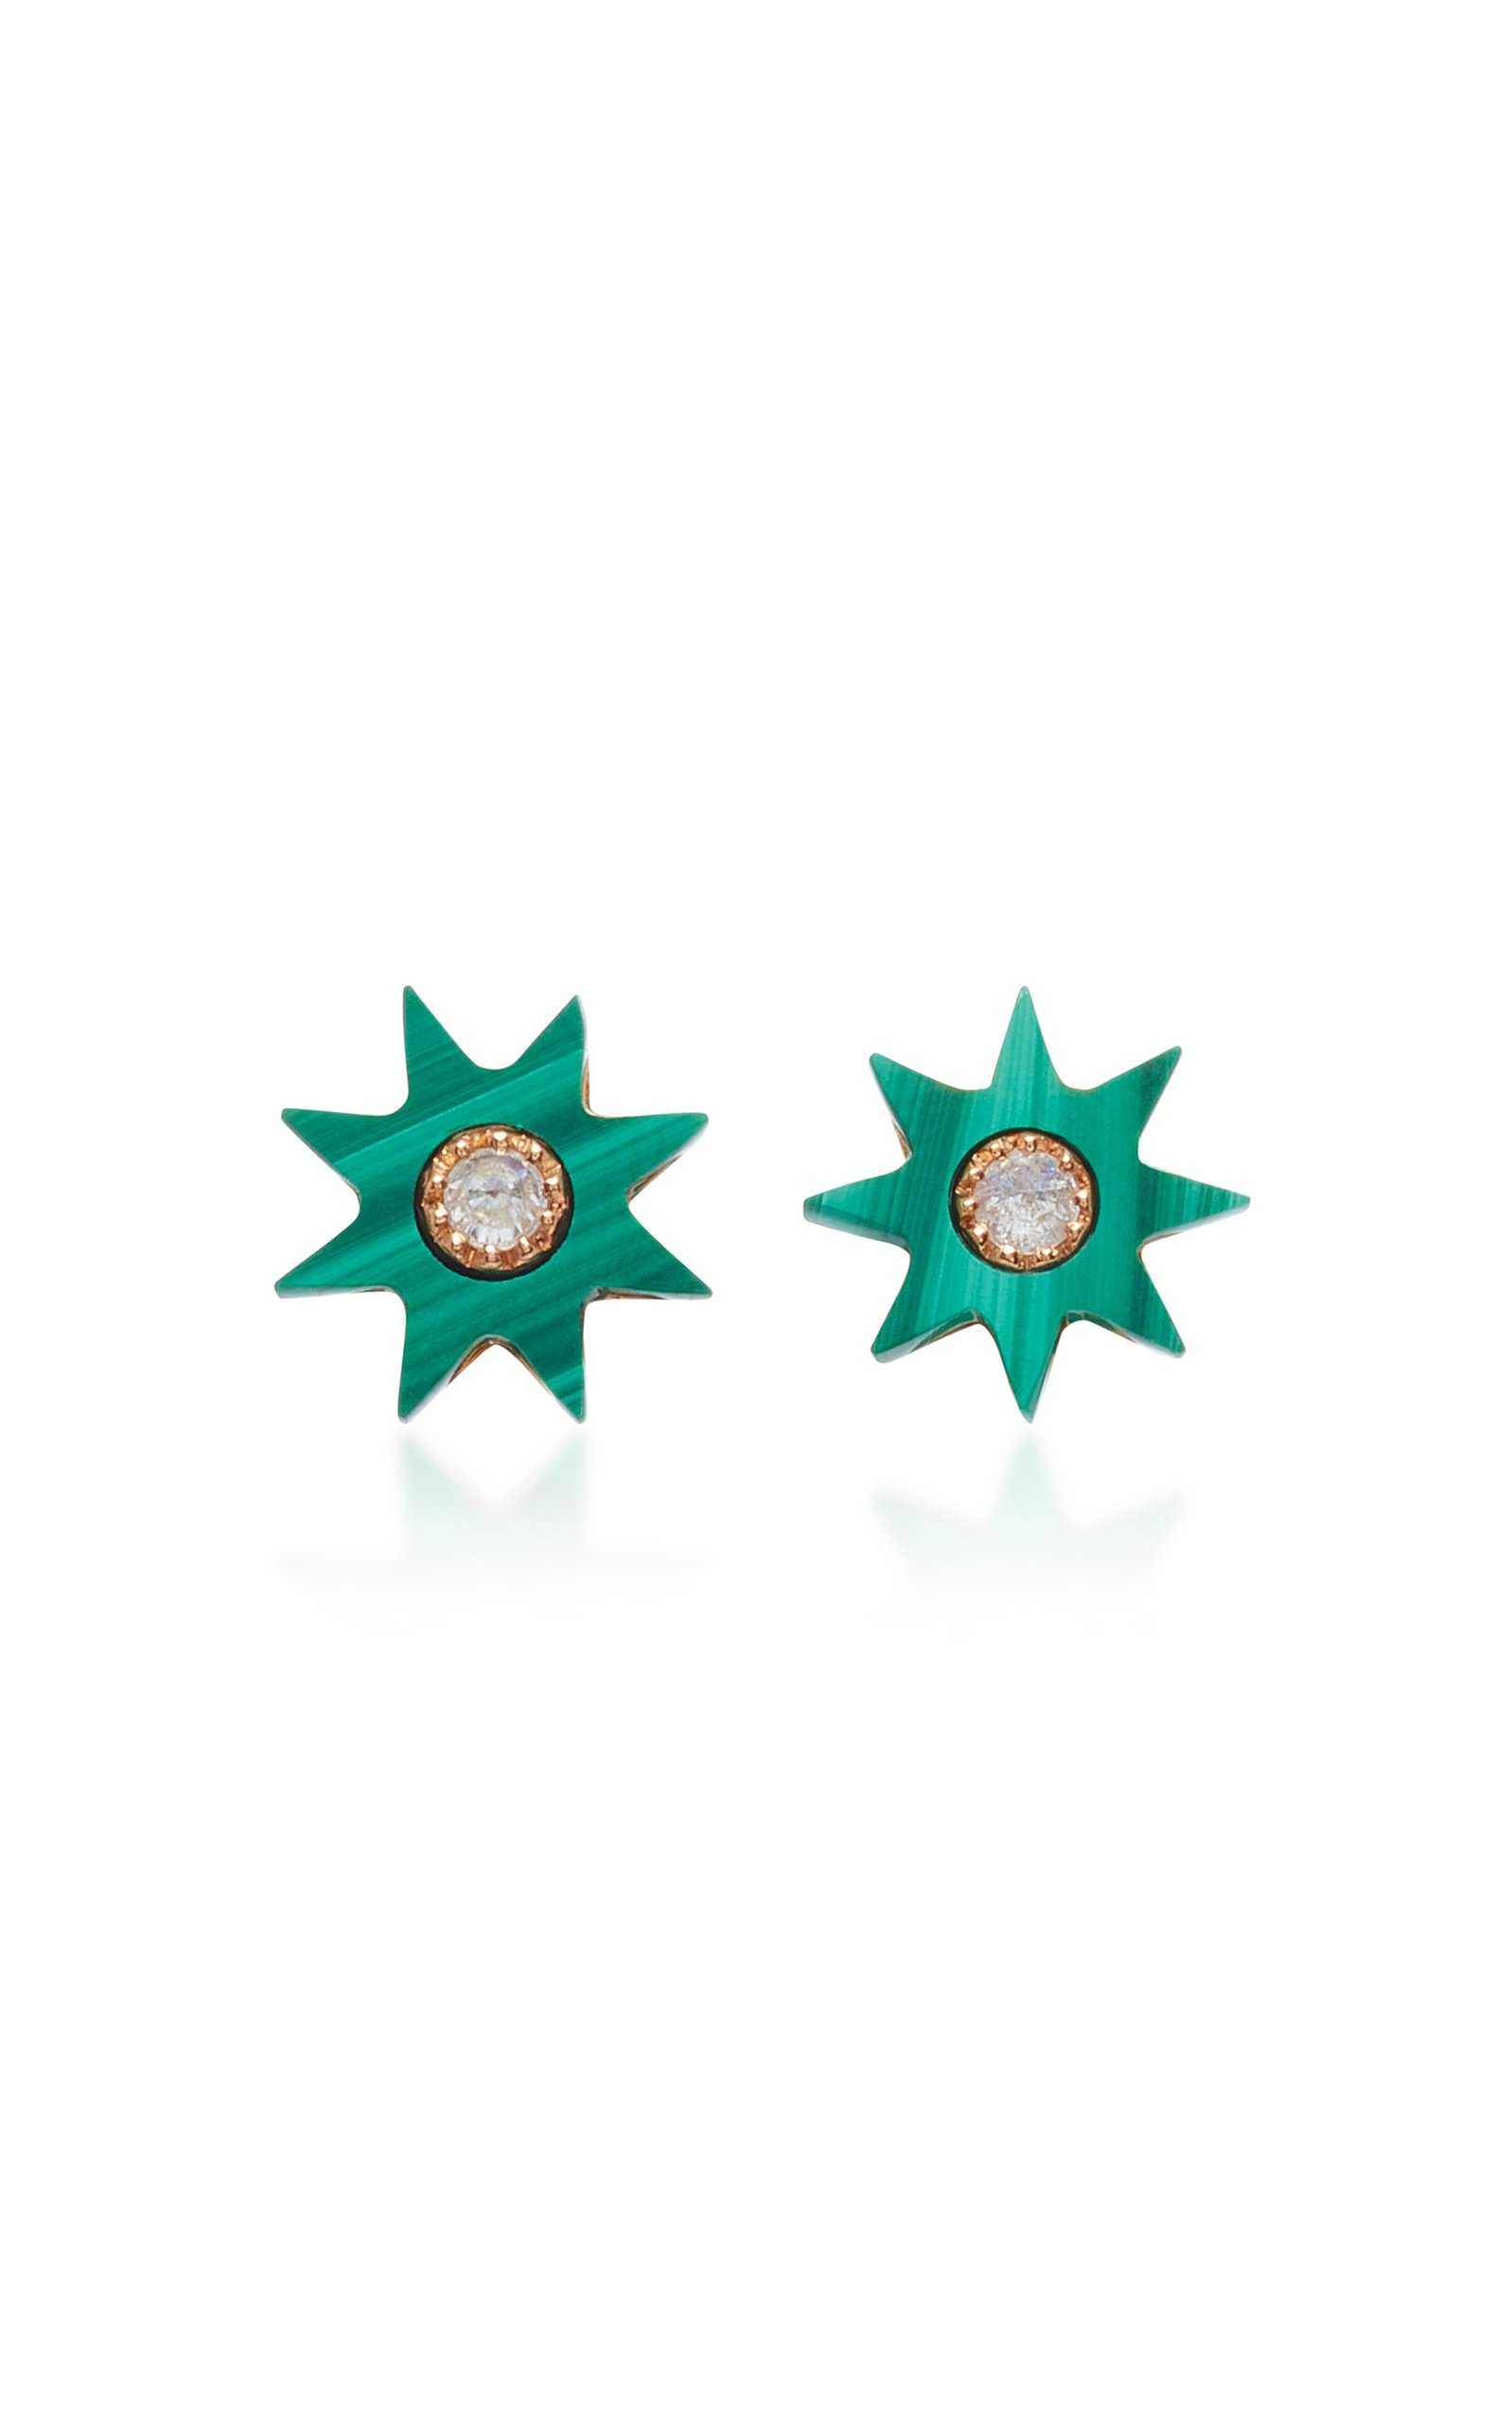 Colette Jewelry Starburst 18K Rose Gold Agate and Diamond Earrings